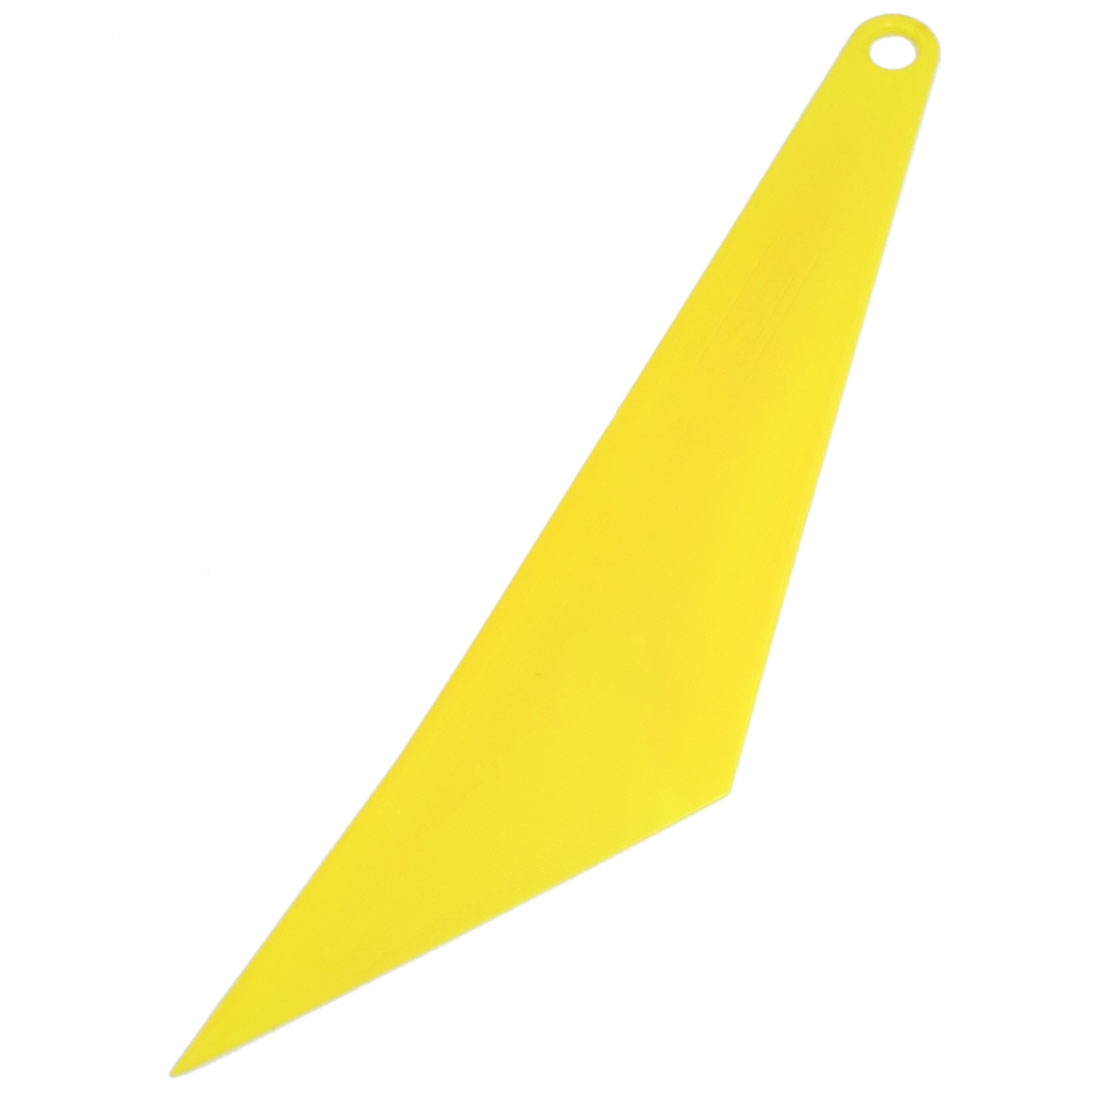 "Car Yellow Plastic Triangle Window Cleaning Scraper Blade 11.4"" Length"